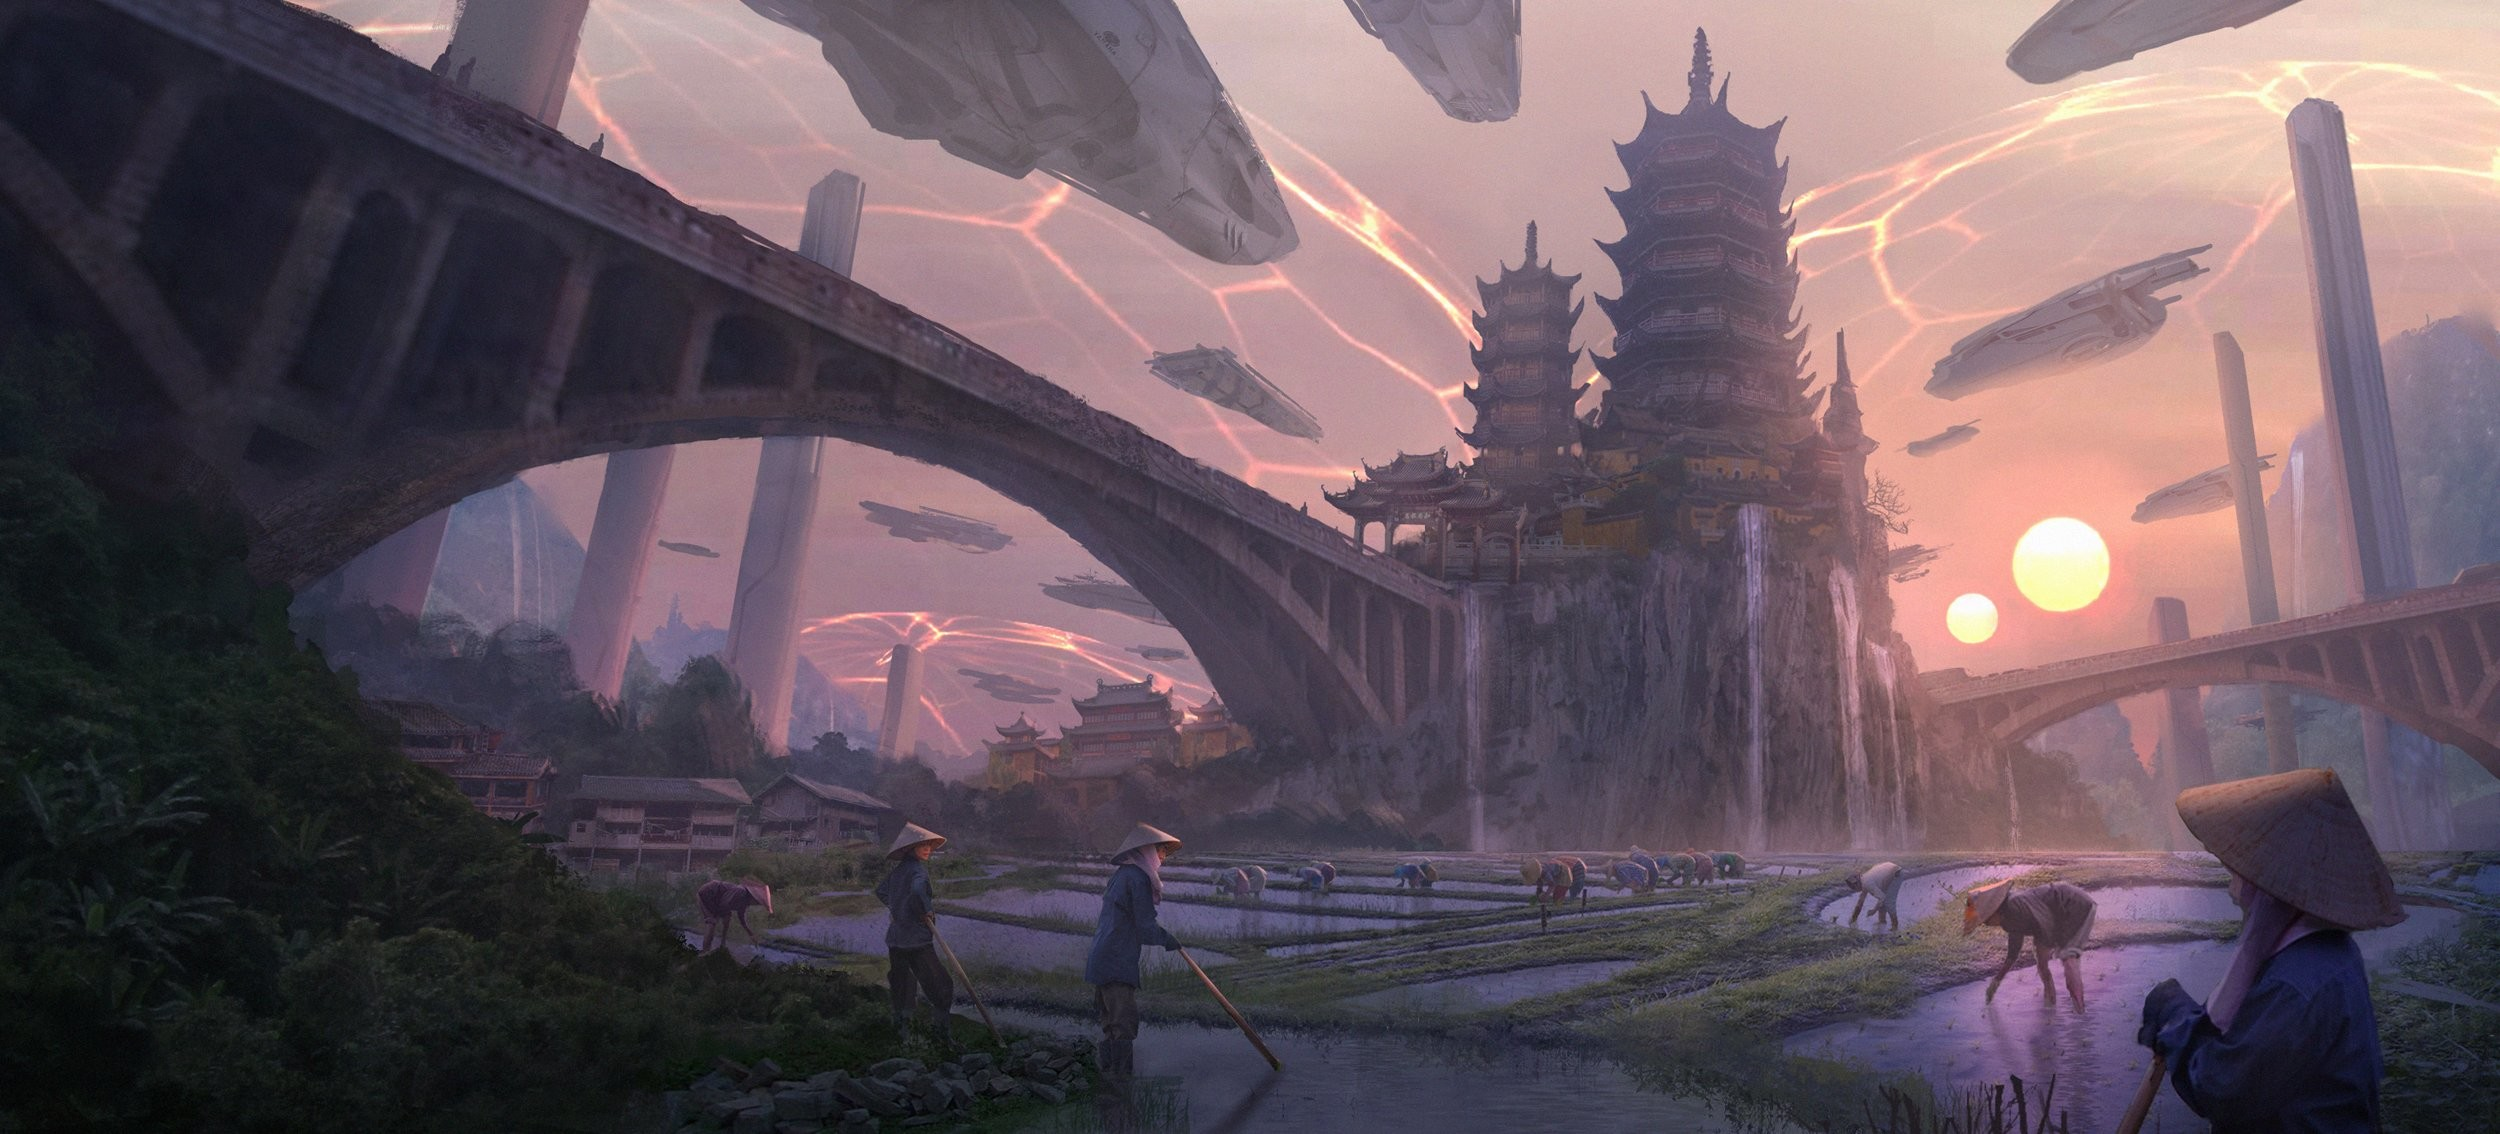 Res: 2500x1134, fantasy, city,android, sunset,china full hd wallpapers, bridge, asian, hd,  wallpaper hd mobile, free artworks, sunrise, castle, oriental, cities  Wallpaper ...